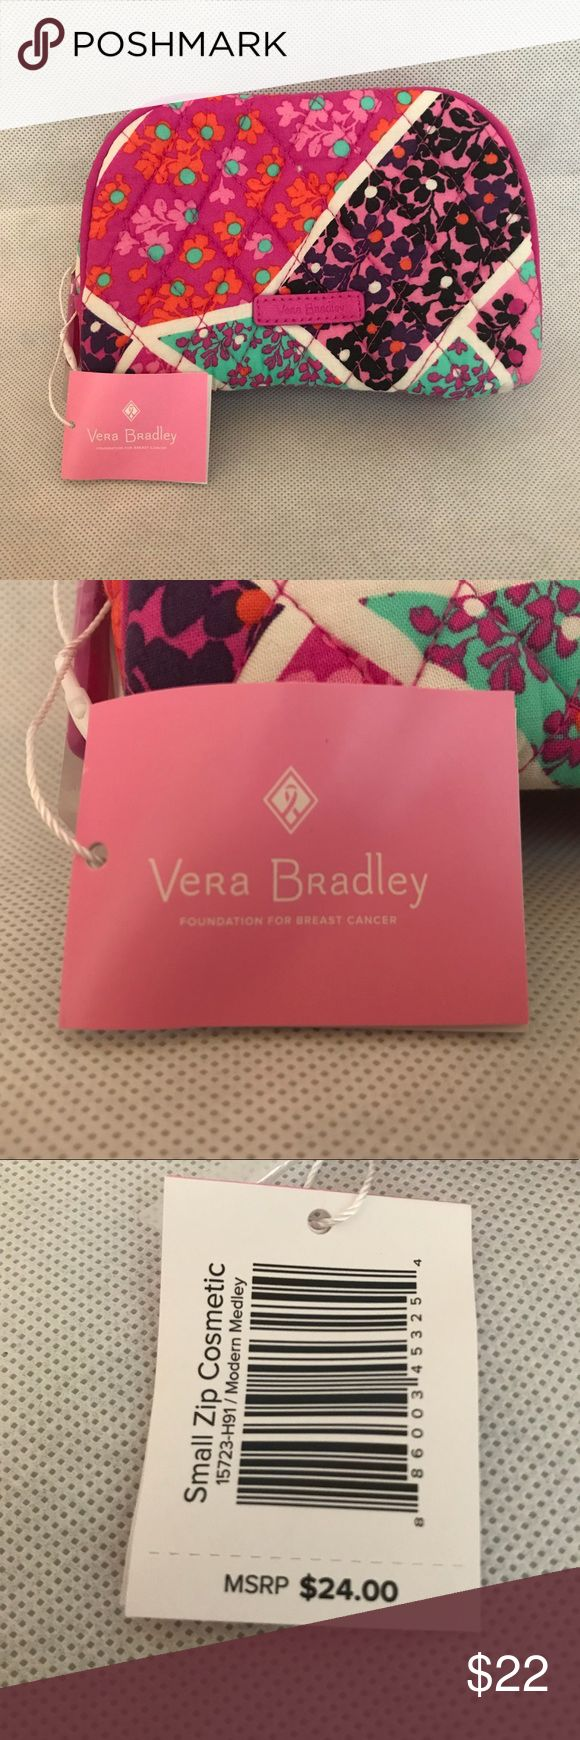 💖VERA BRADLEY Small Cosmetic Bag-Modern Medley💖 Modern Medley new cosmetic bag directly from Vera Bradley. Pairs well with other Vera Bradley products, and it is a great accessory to add to your collection.  Comes new with tags.  Only opened plastic wrap to take pictures. Stored in a pet free and smoke free environment Vera Bradley Bags Cosmetic Bags & Cases